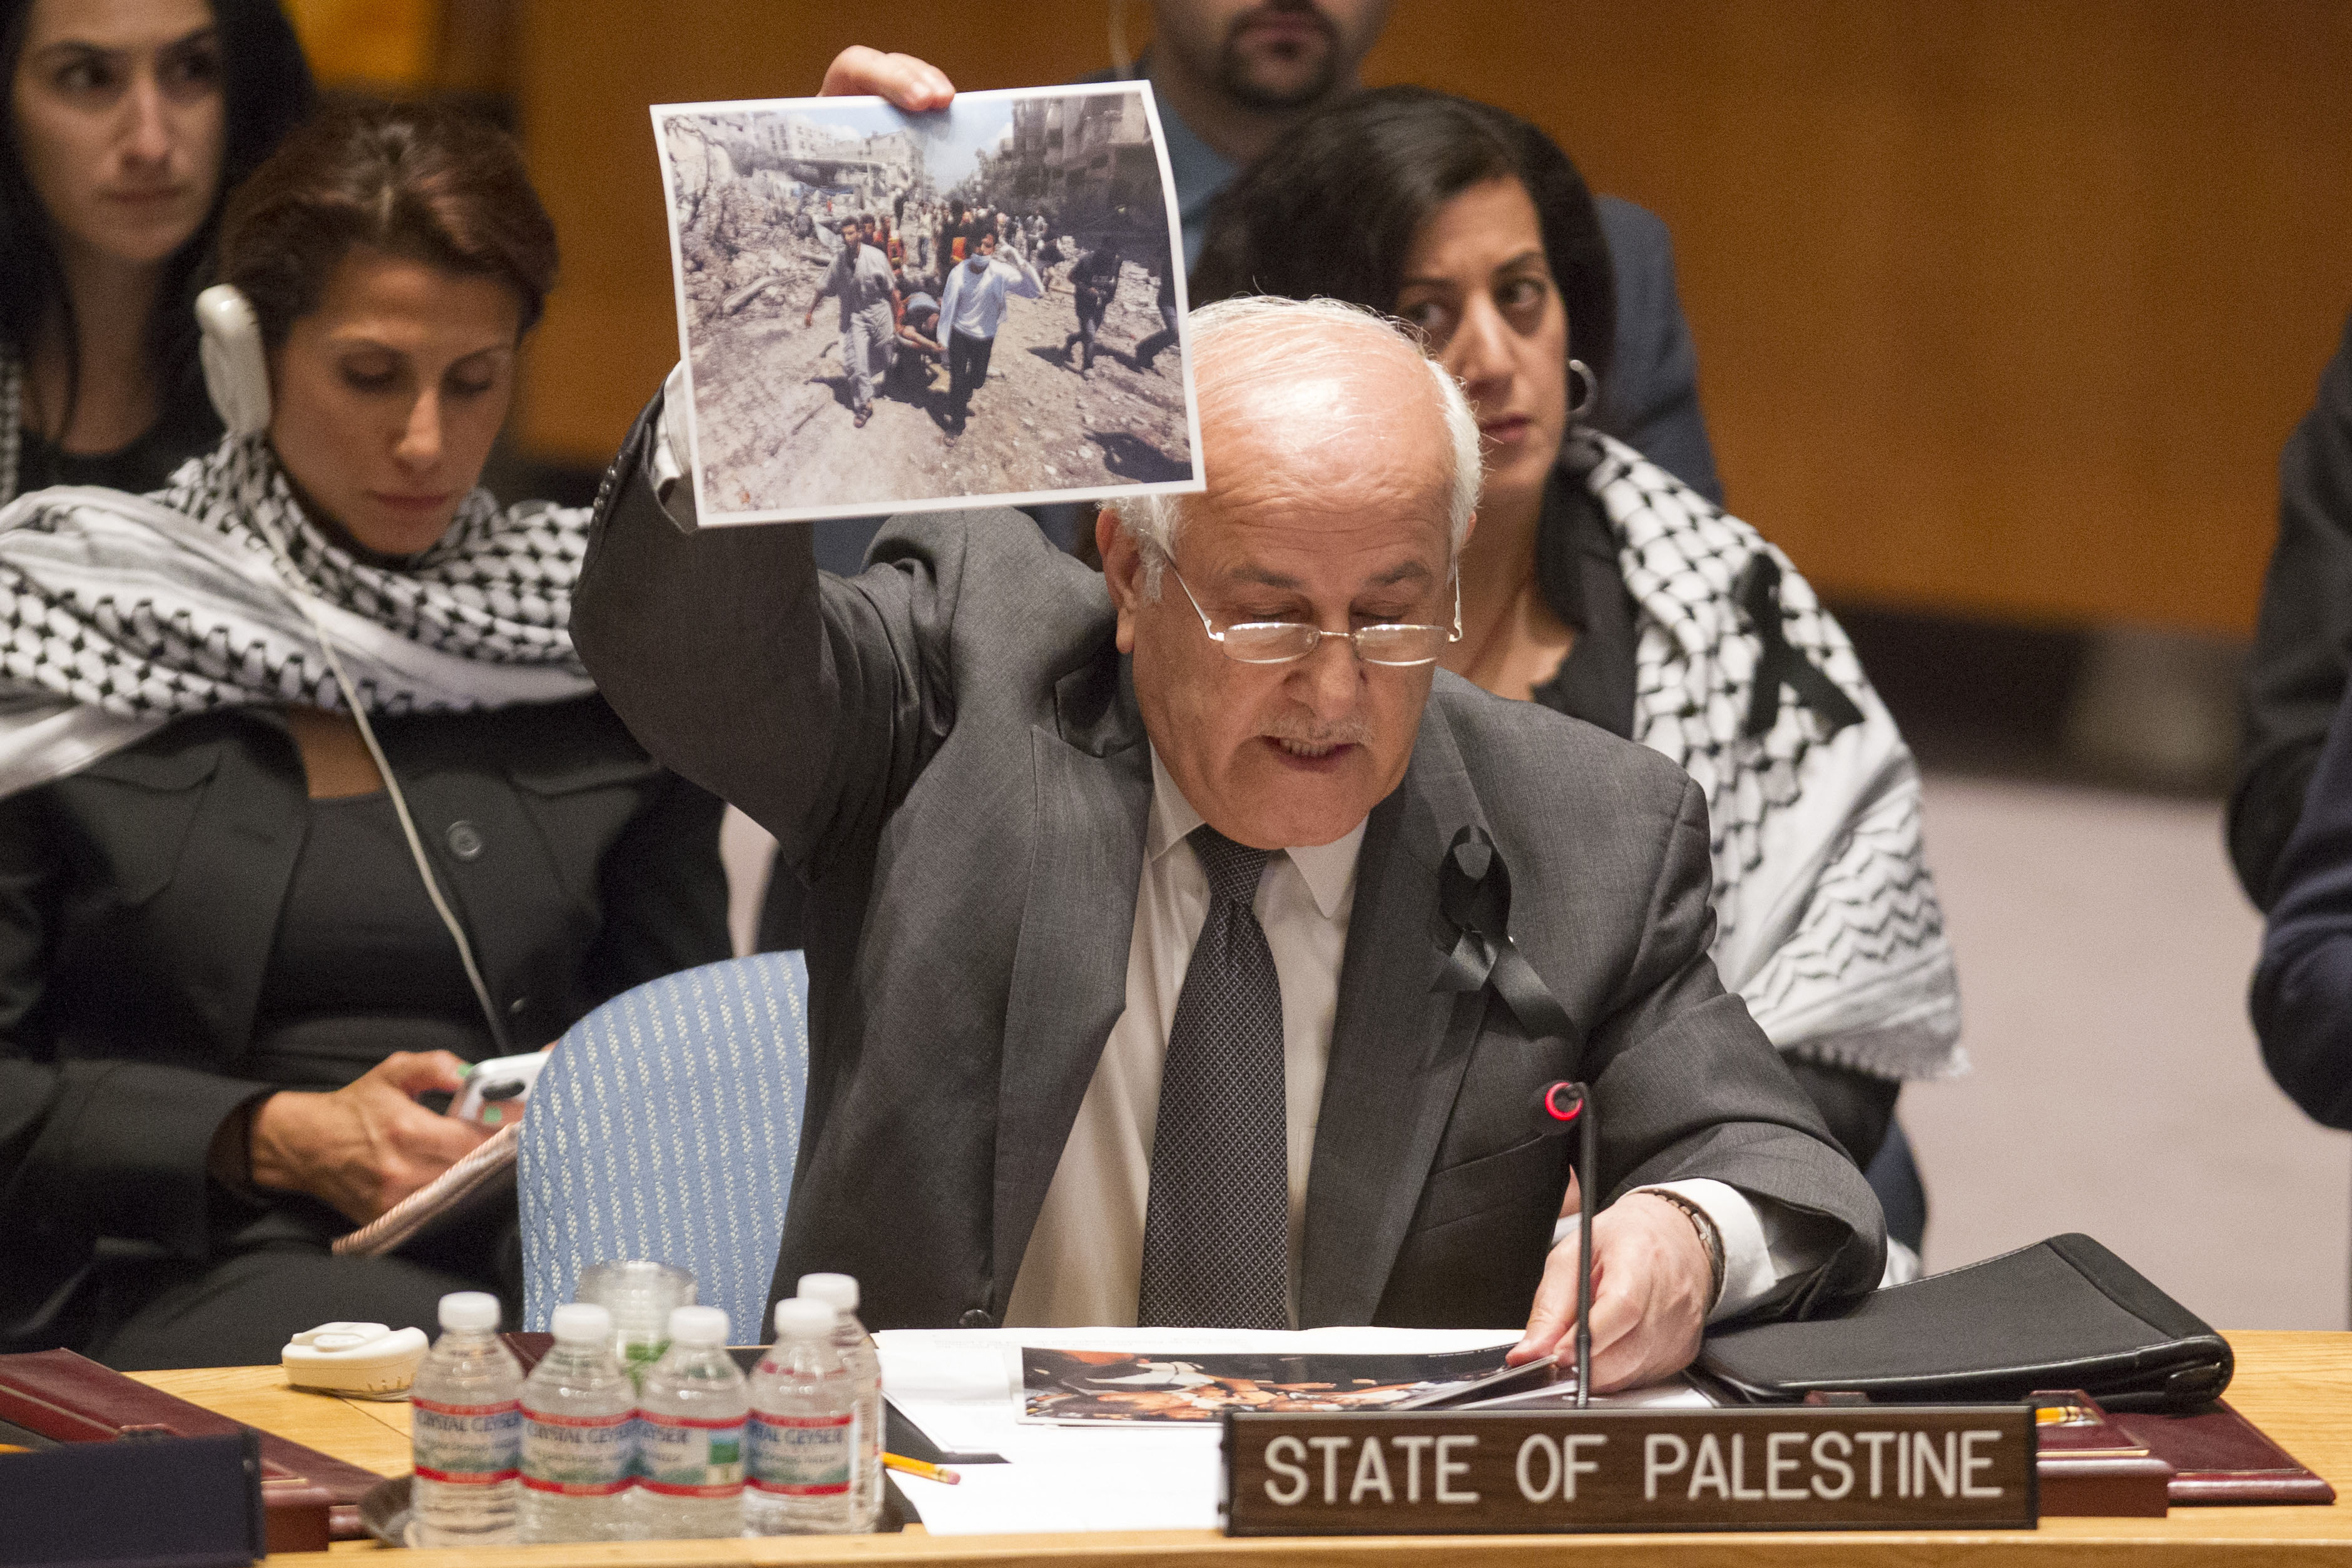 Statement by Ambassador Dr. Riyad Mansour before the United Nations Security Council Open Debate on the Situation in the Middle East, including the Palestine Question, 22 July 2014